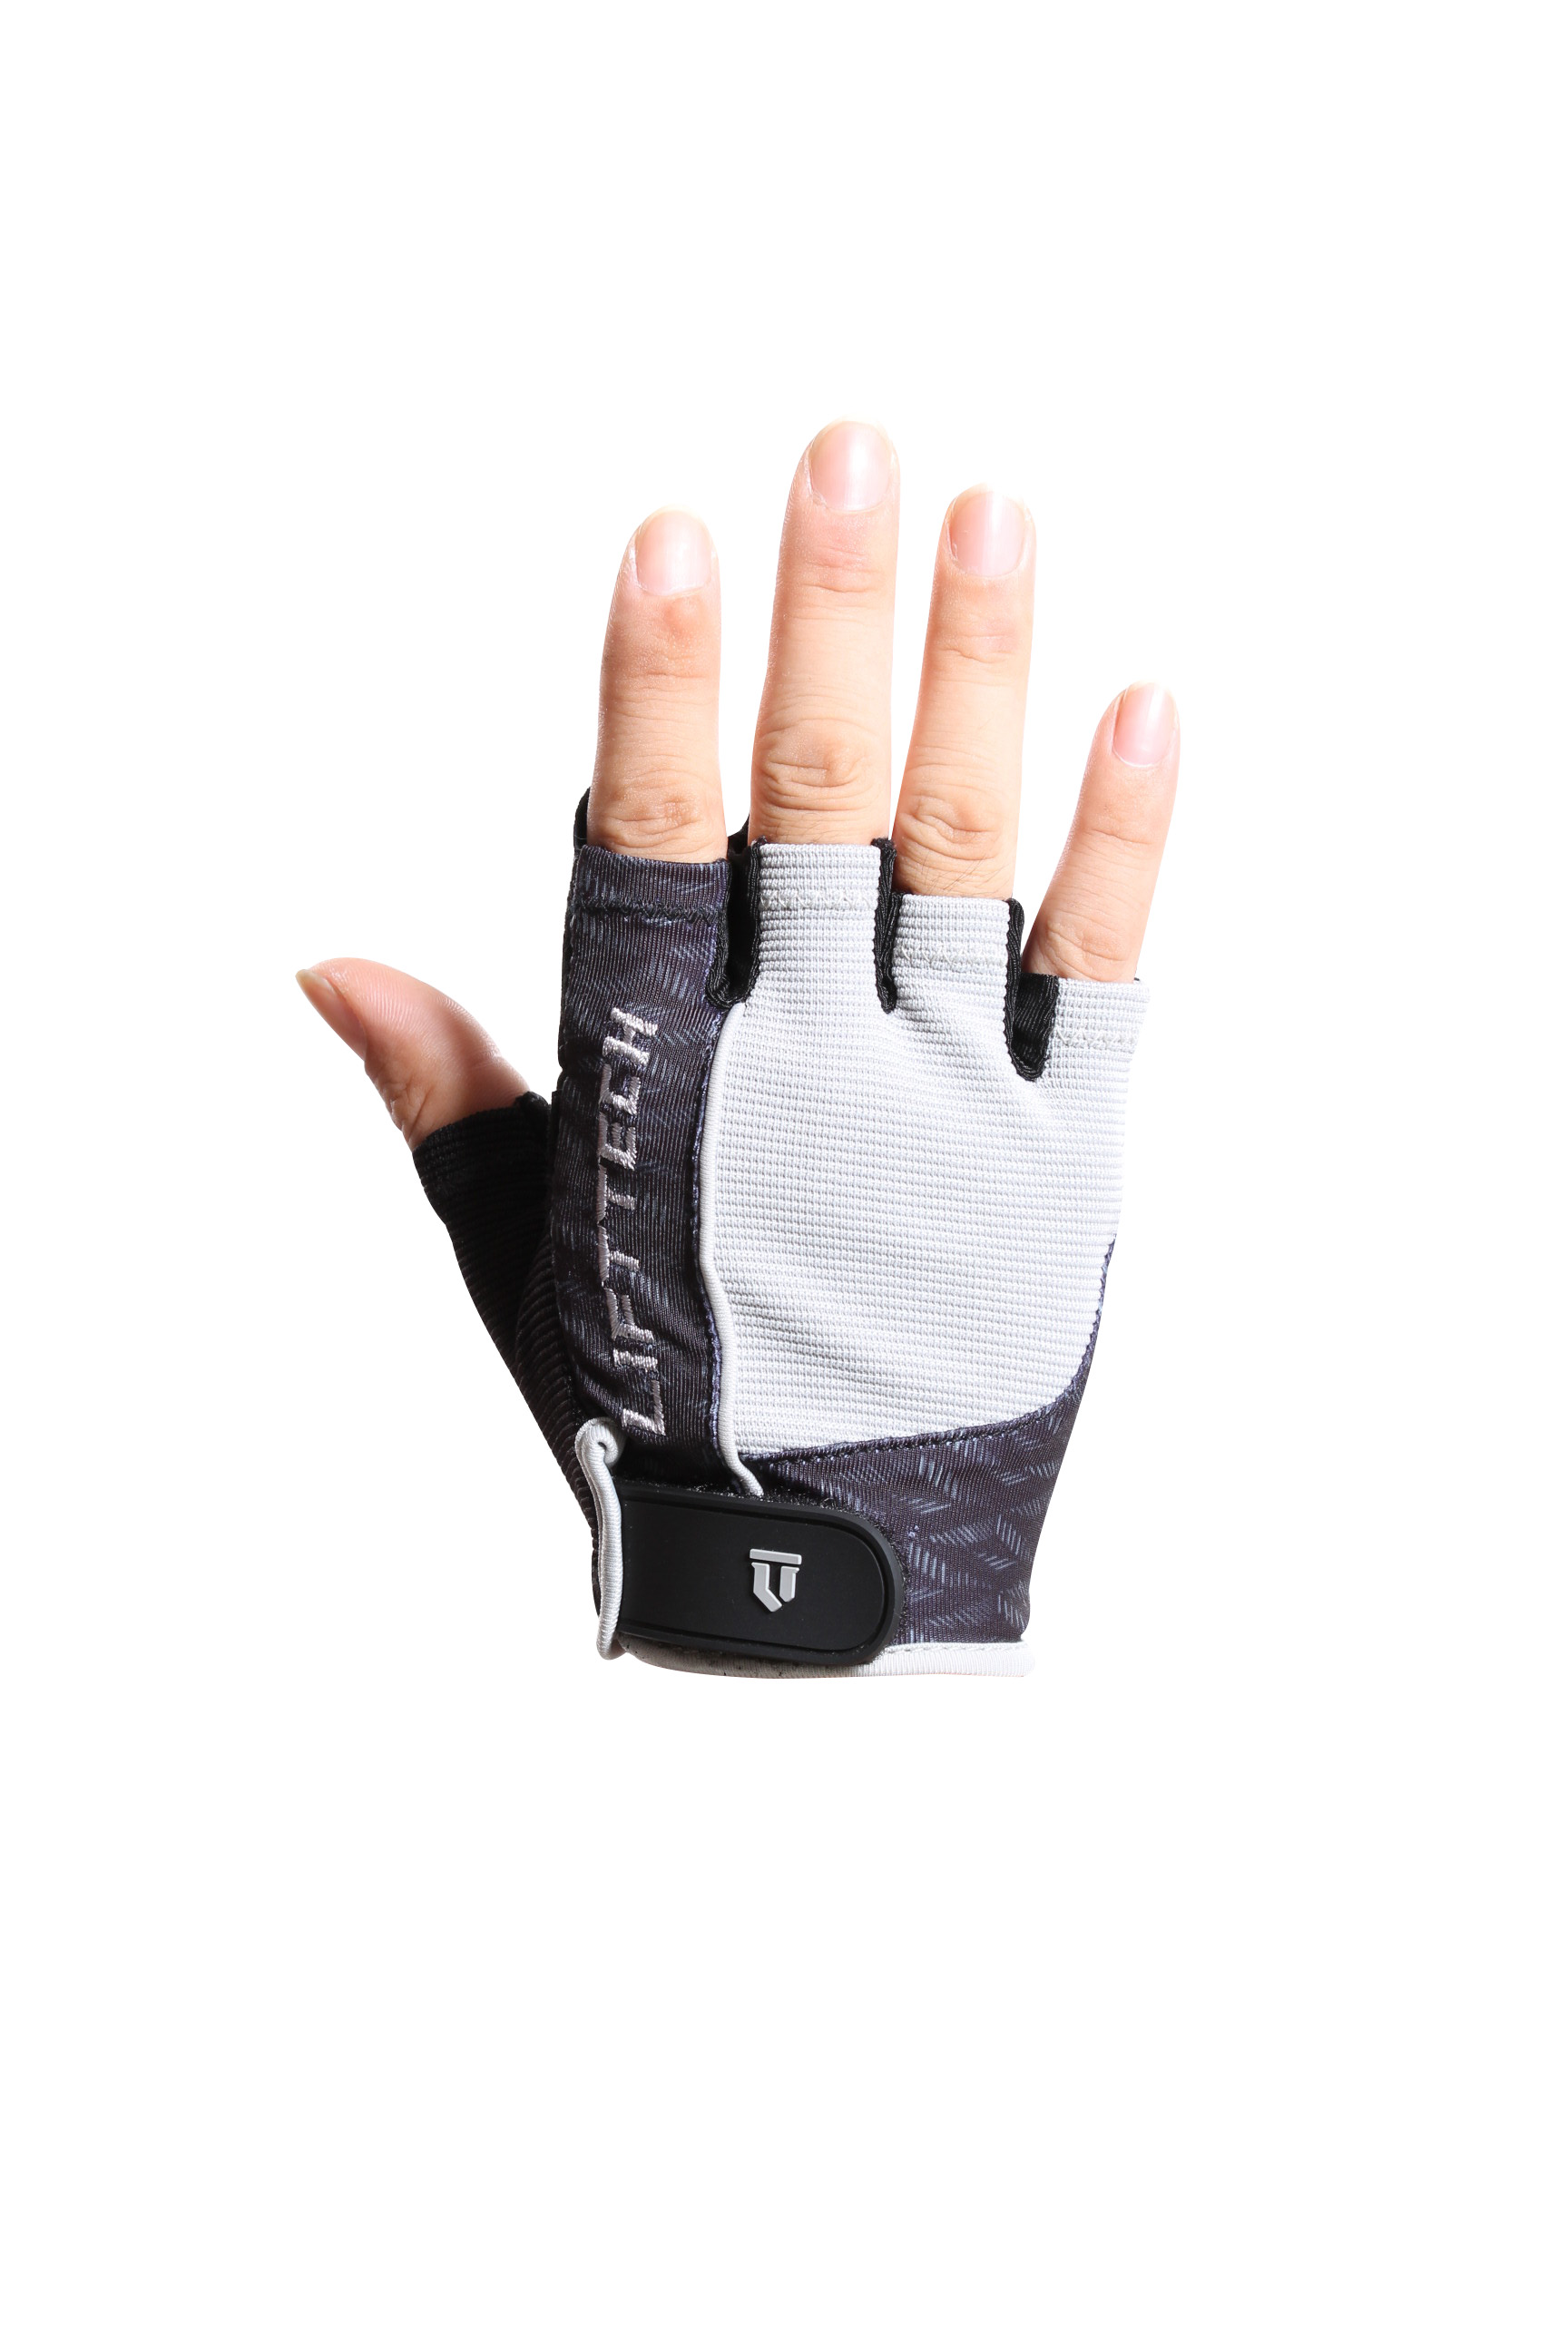 Adjustable Slack Weightlifting Gloves